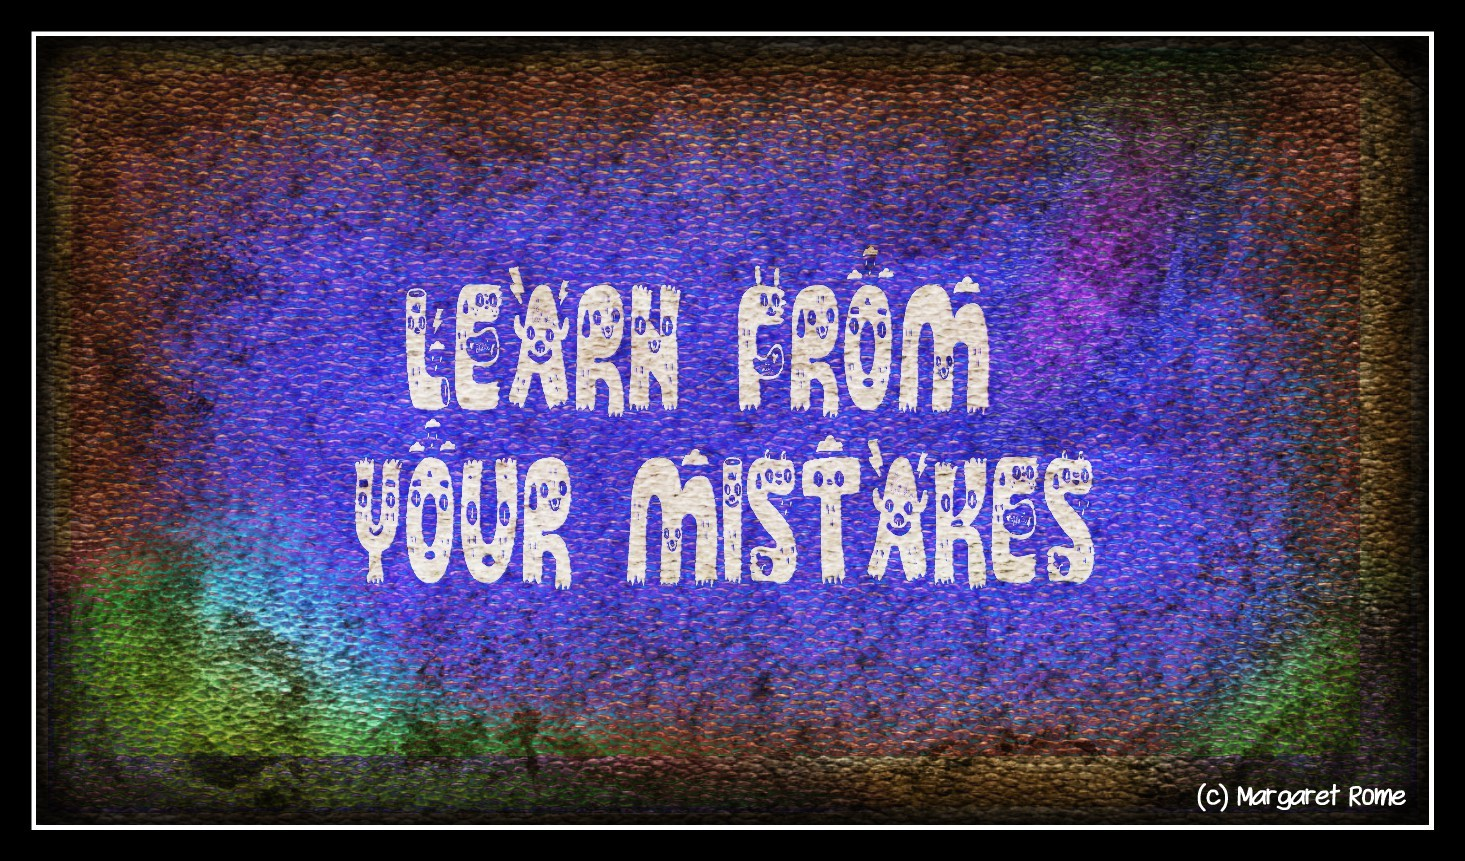 Learn from mistakes Margaret Rome